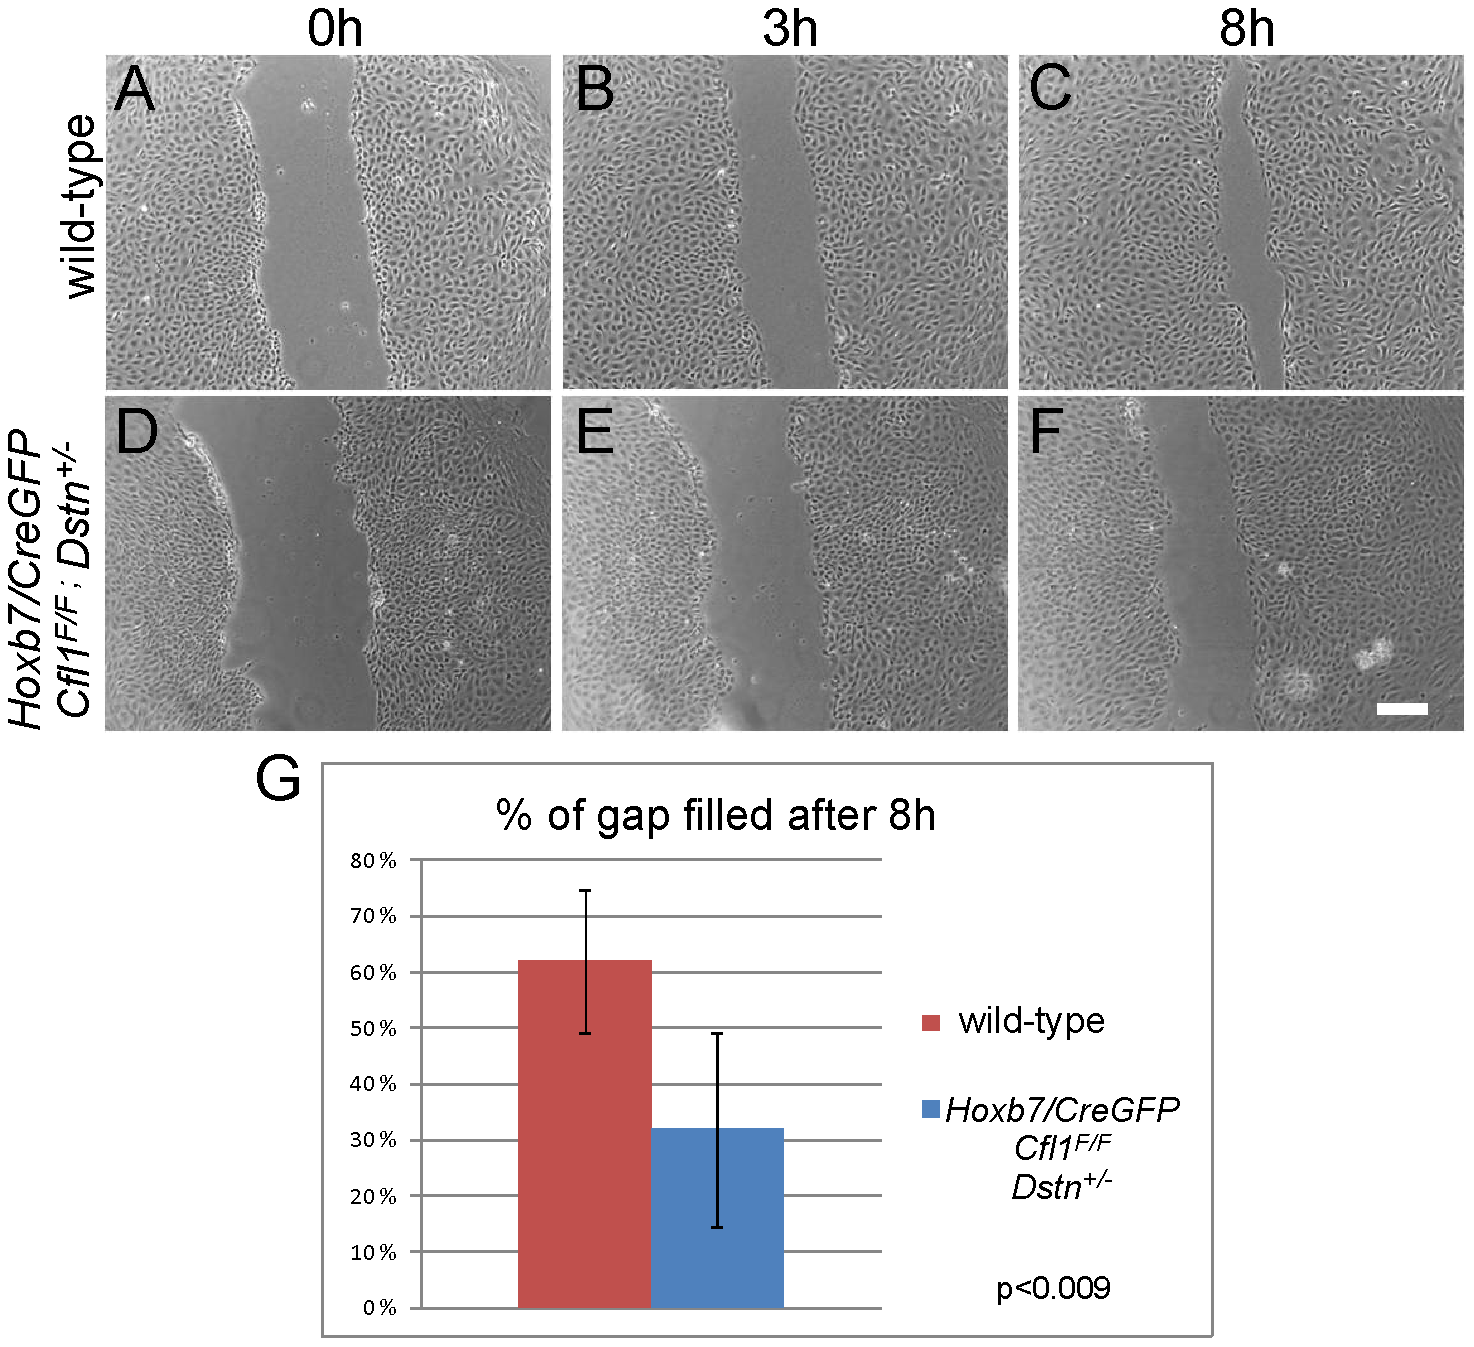 Primary UB epithelial cells lacking <i>Cfl1</i> but maintaining one wild-type <i>Dstn</i> allele (<i>Hoxb7/CreGFP; Cfl1<sup>F/F</sup>; Dstn+/−</i>) show a migration delay <i>in vitro</i>.